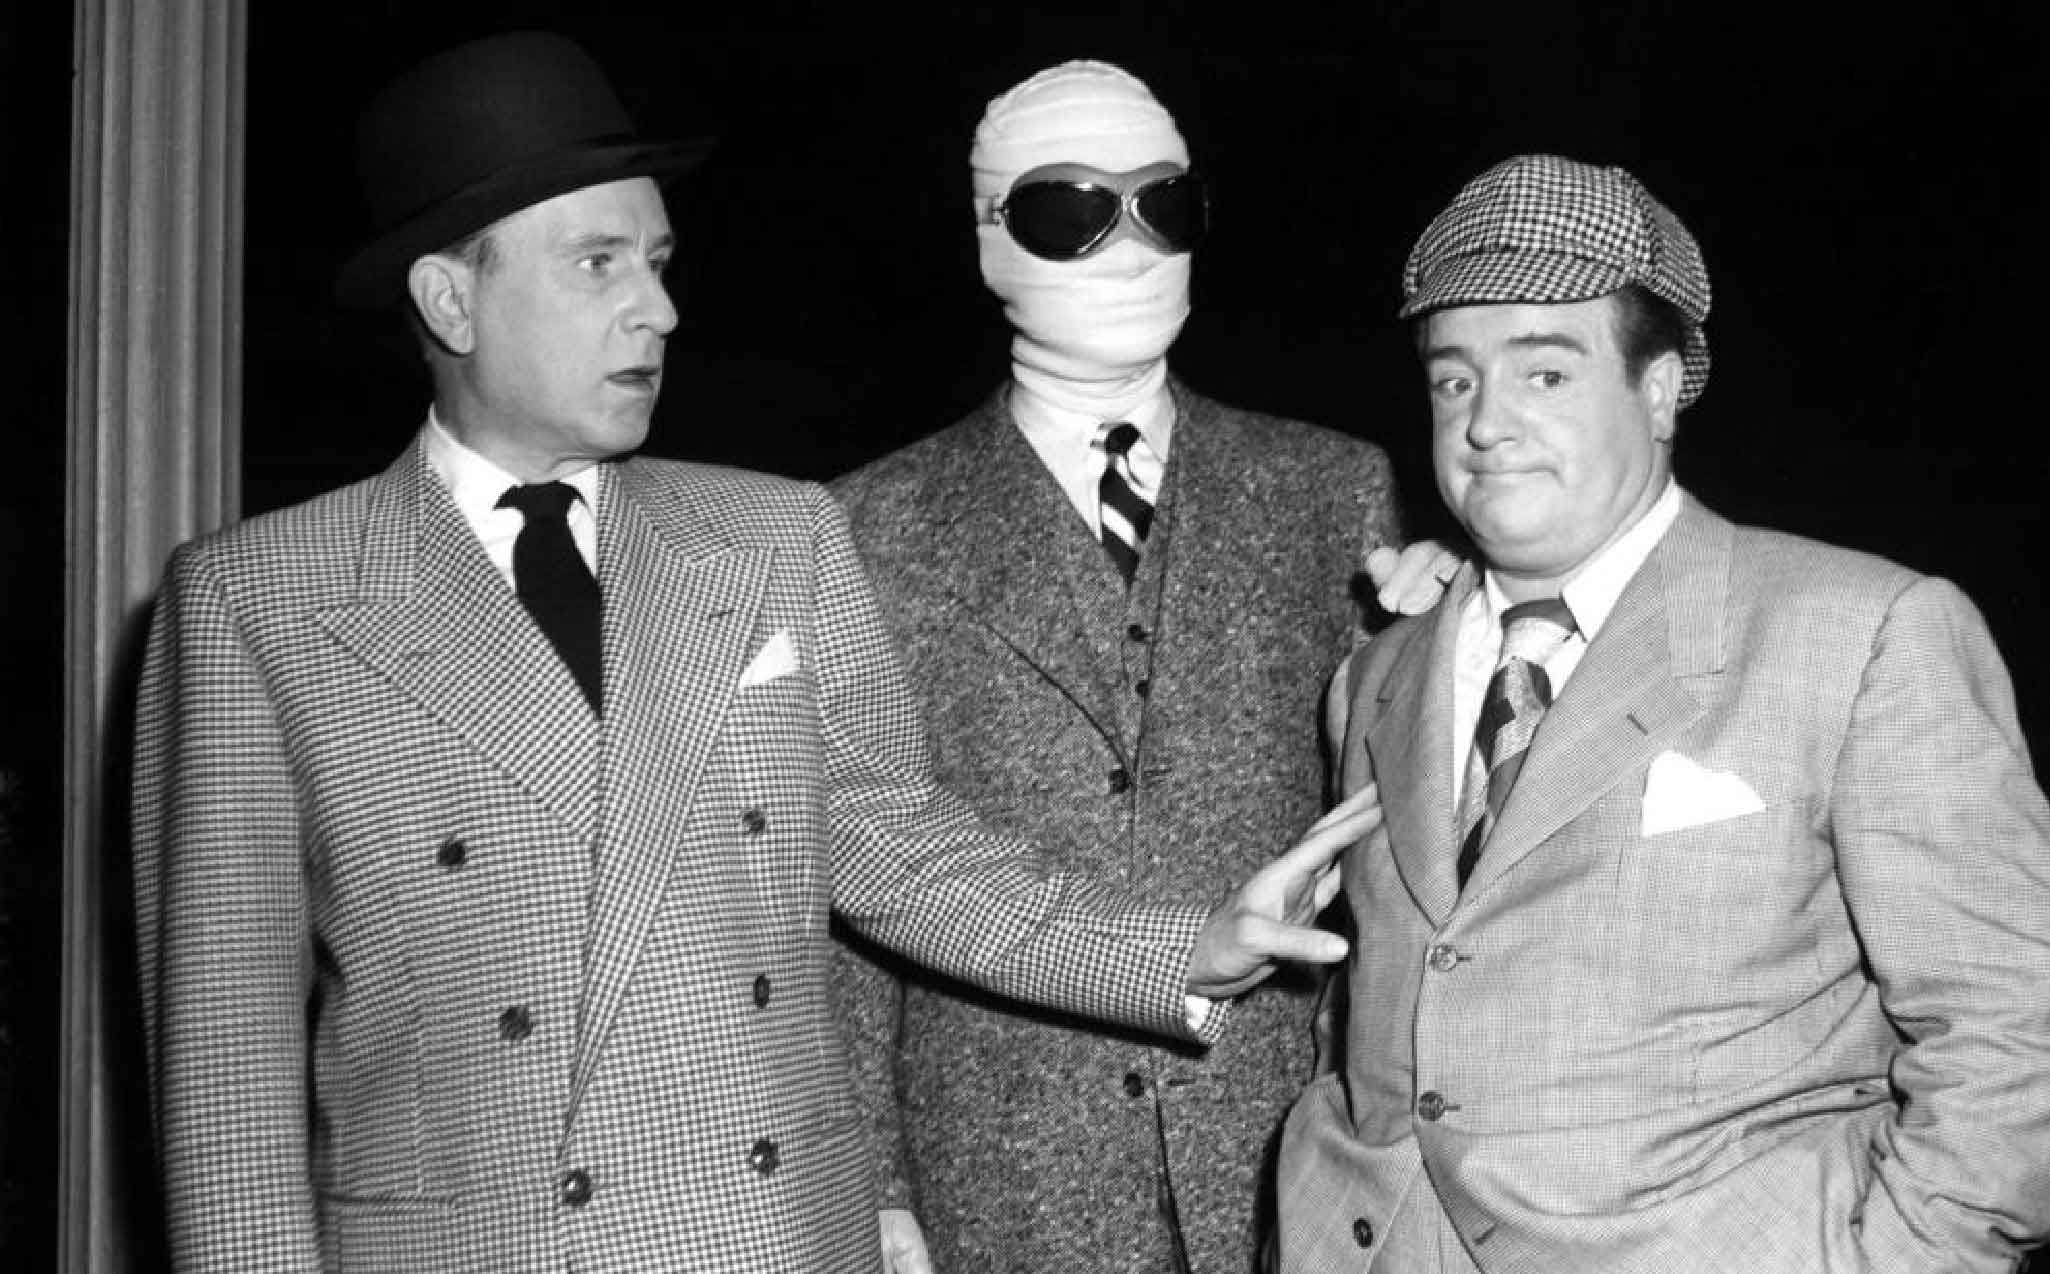 Bud Abbott, Lou Costello, and Arthur Franz in Bud Abbott and Lou Costello Meet the Invisible Man (1951)